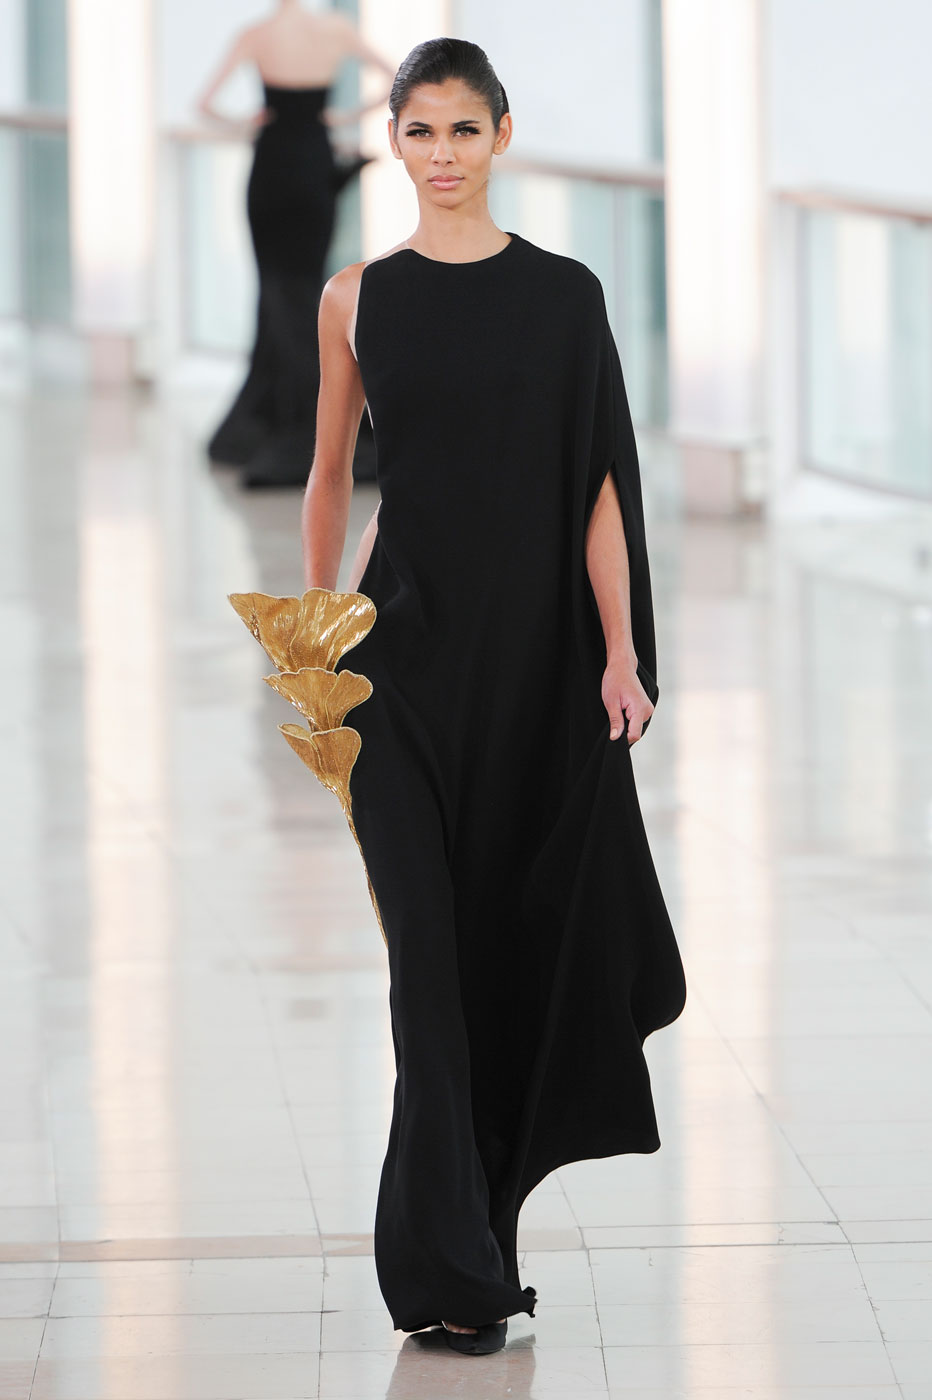 stephane-rolland-fashion-runway-show-haute-couture-paris-spring-2015-the-impression-36